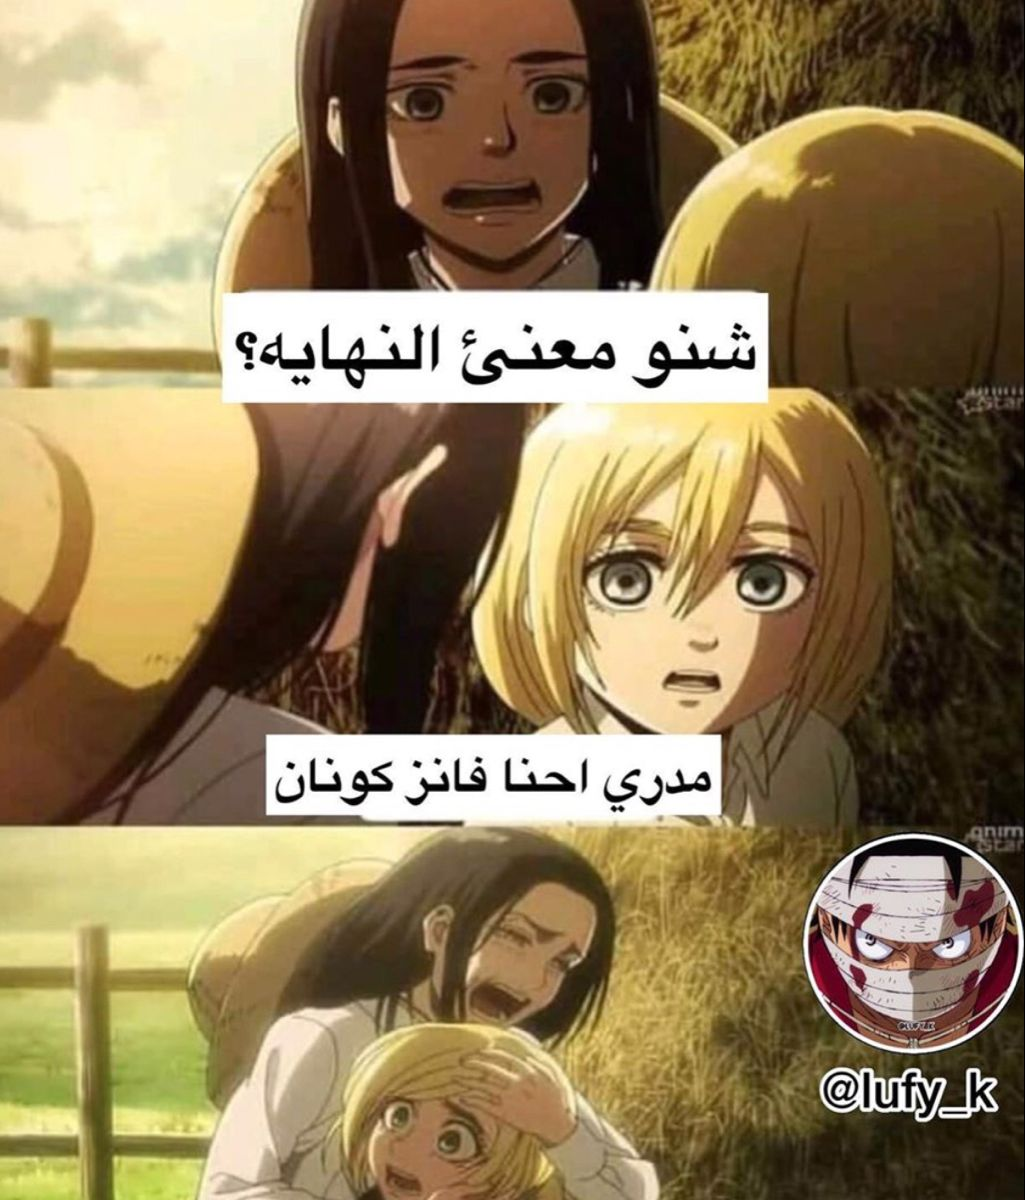 Pin By 007 On نكت انمي Anime Jokes Anime Funny Funny Science Jokes